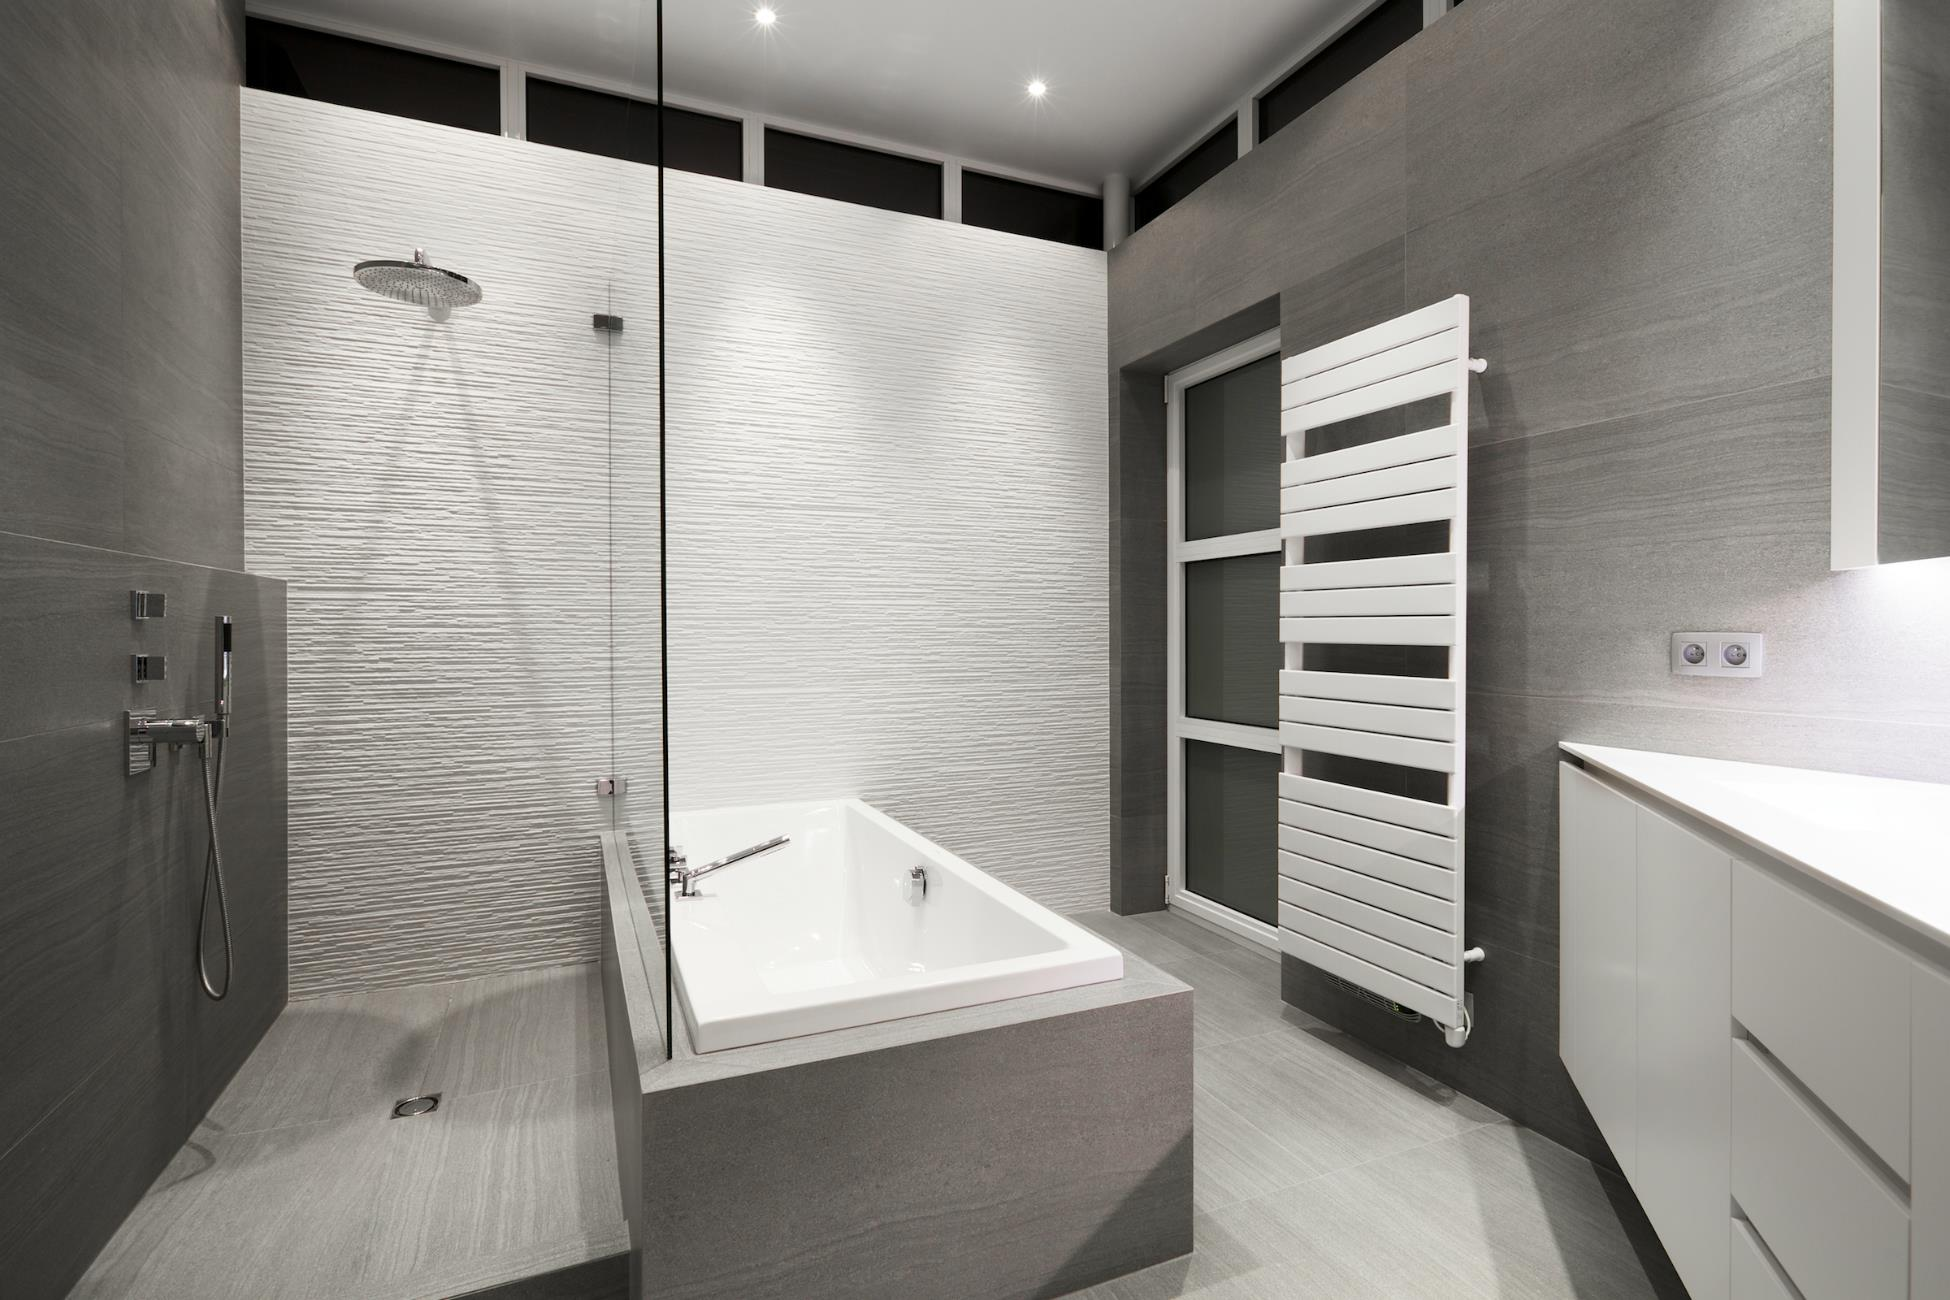 Renov management entreprise g n rale de r novation for Design salle de bain italienne